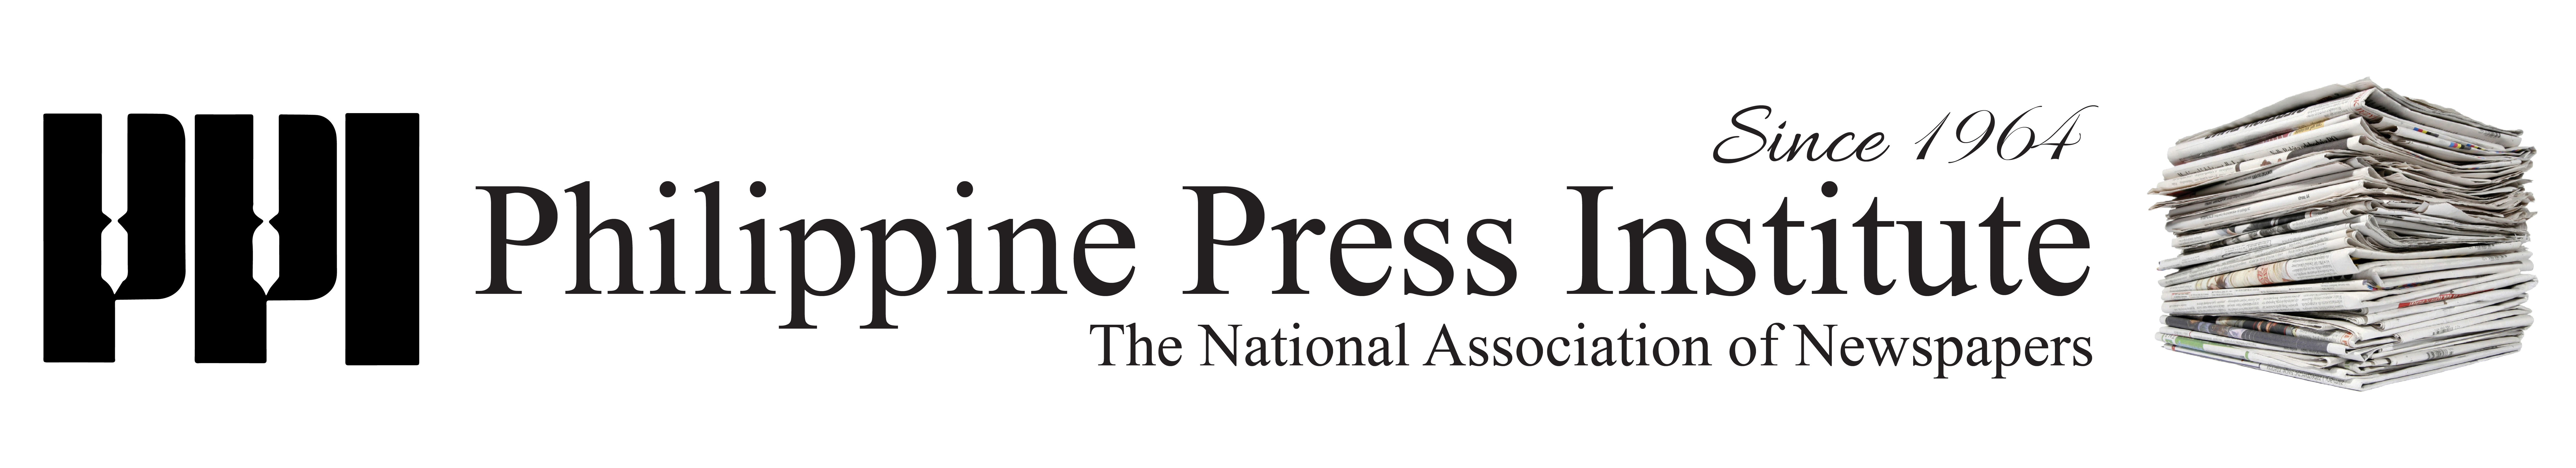 Philippine Press Institute - The National Association of